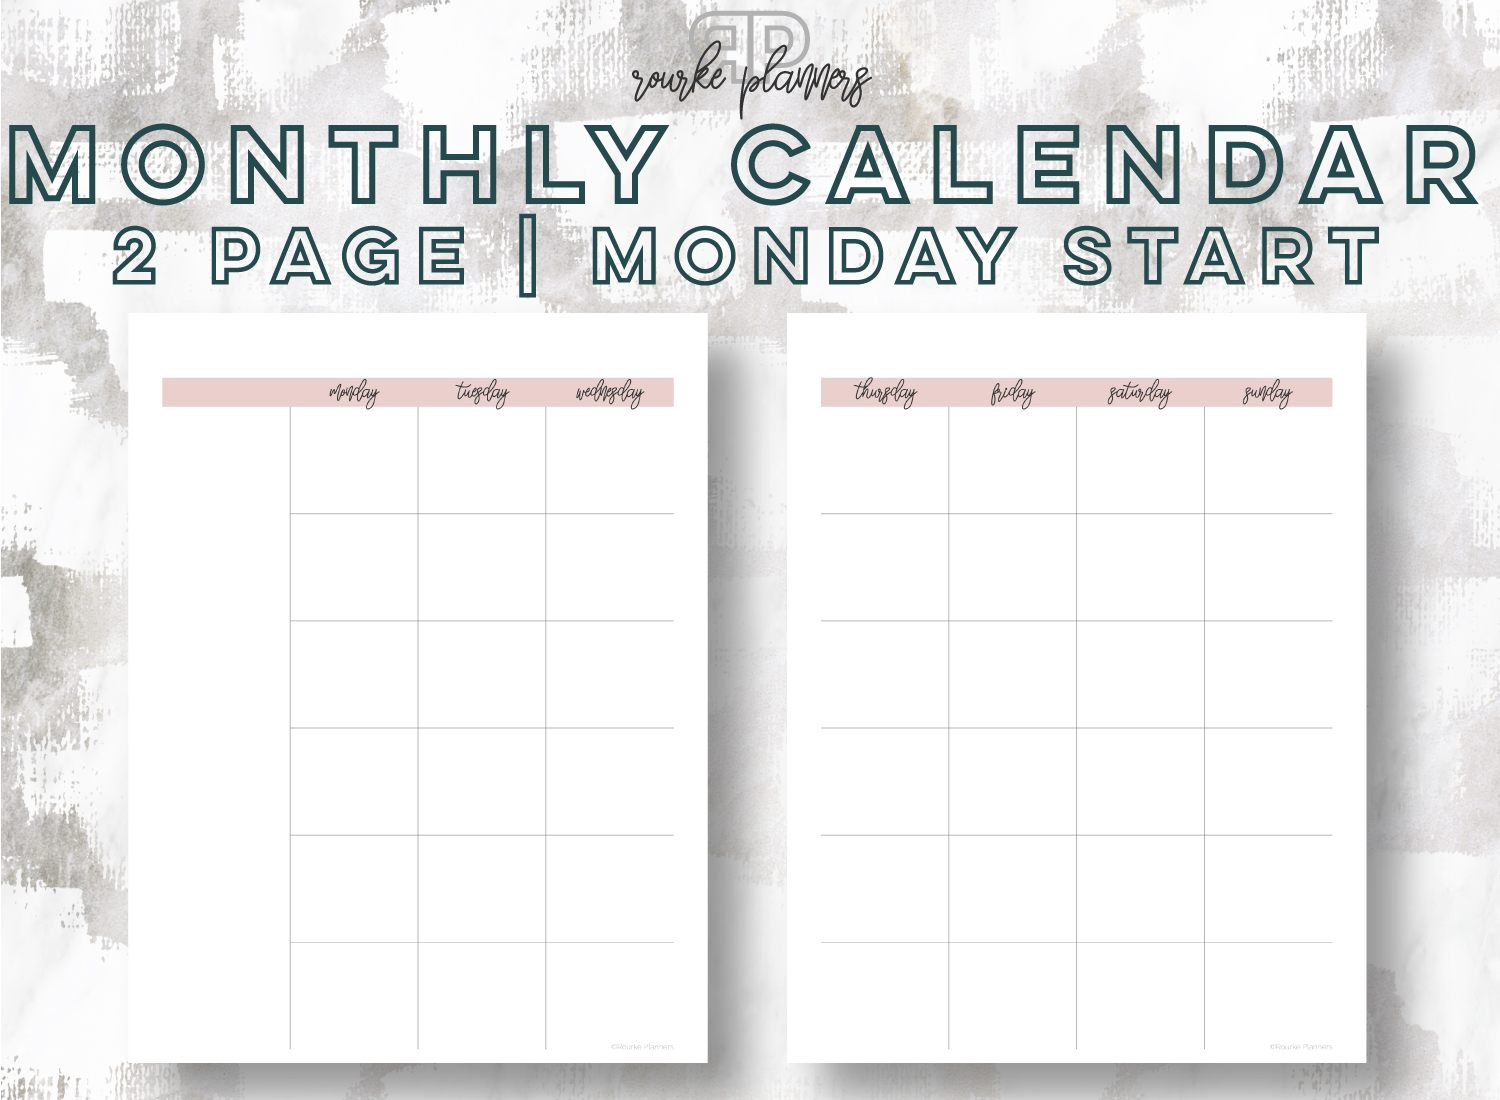 2-Page Monthly Calendar, Monday Start | Rourke Planners